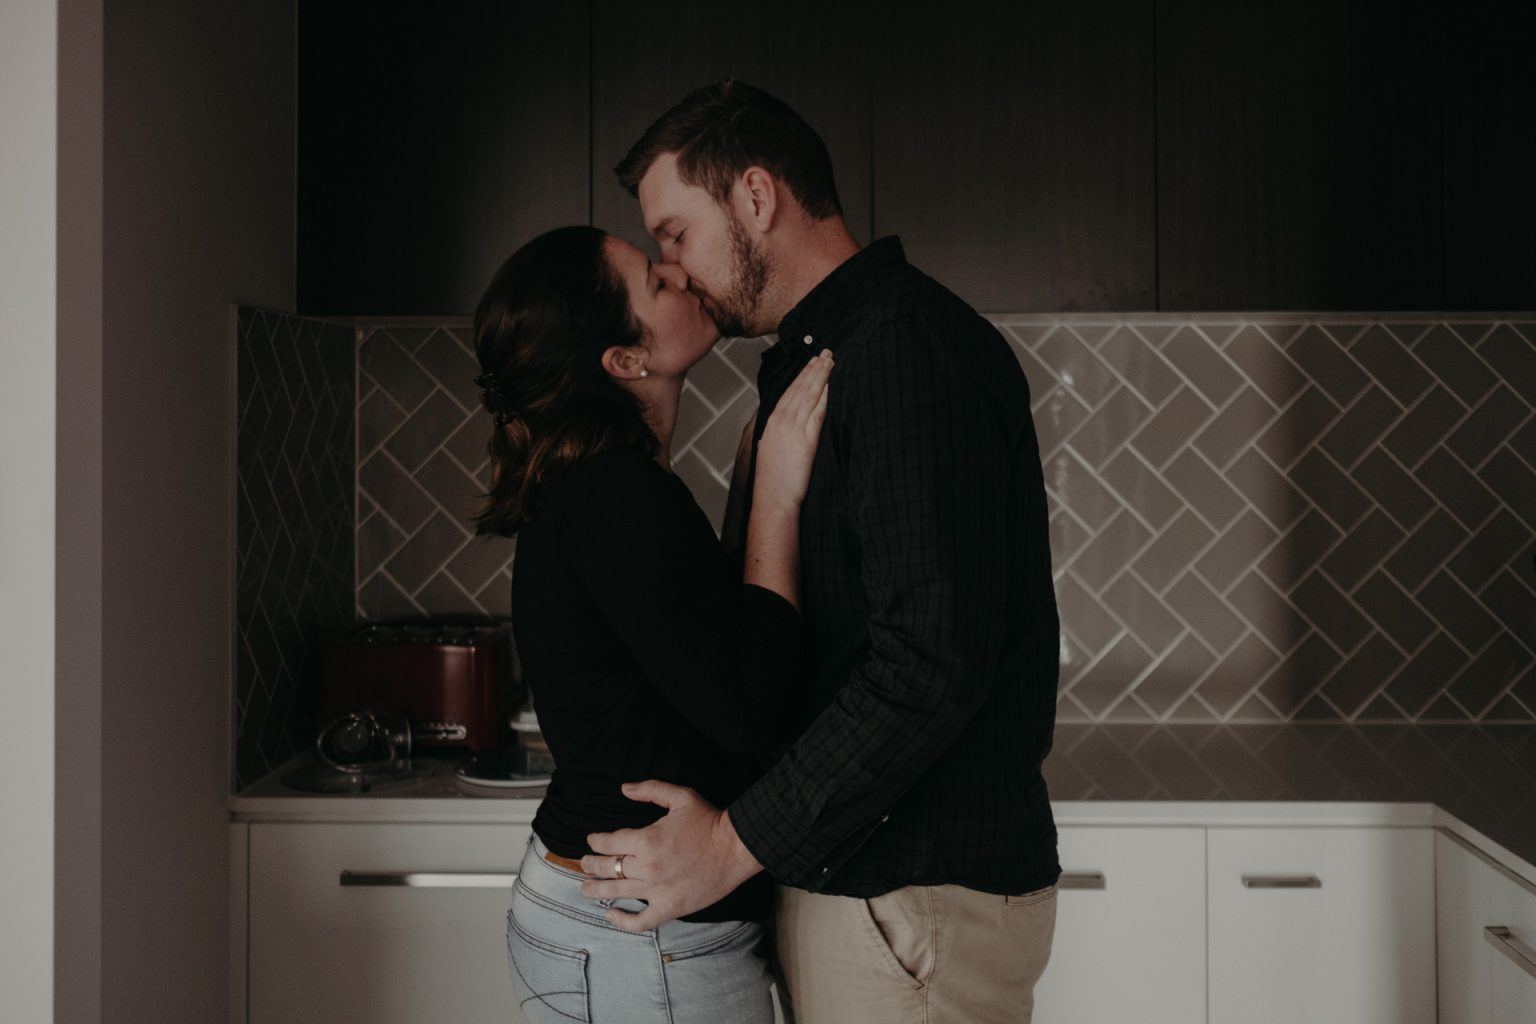 man and woman kissing in kitchen